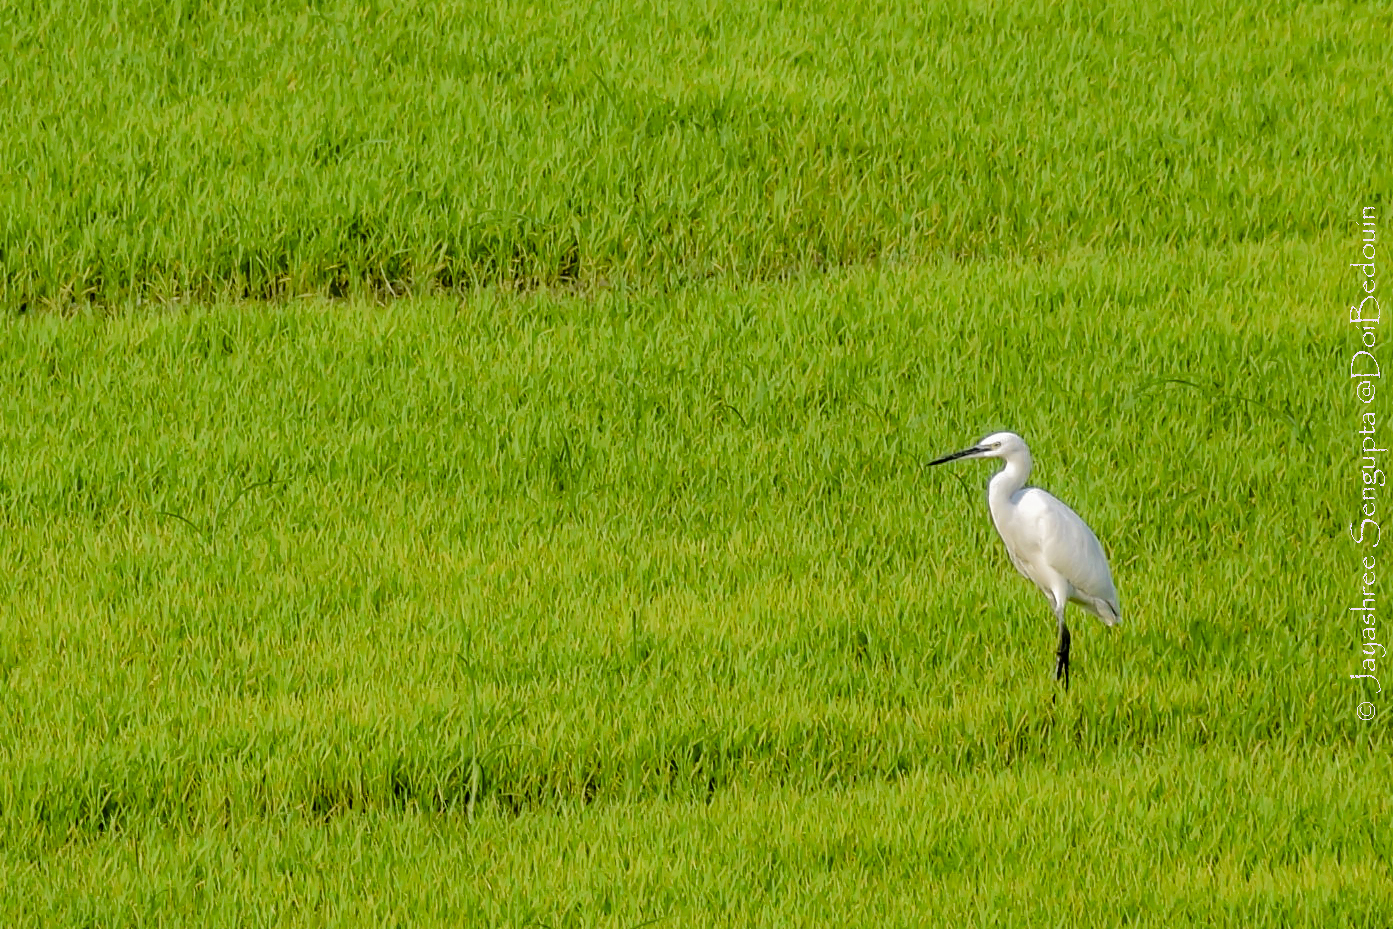 Location: West Bengal, India. A crane is captured viewing the scene as the photographer/ traveler. @DoiBedouin